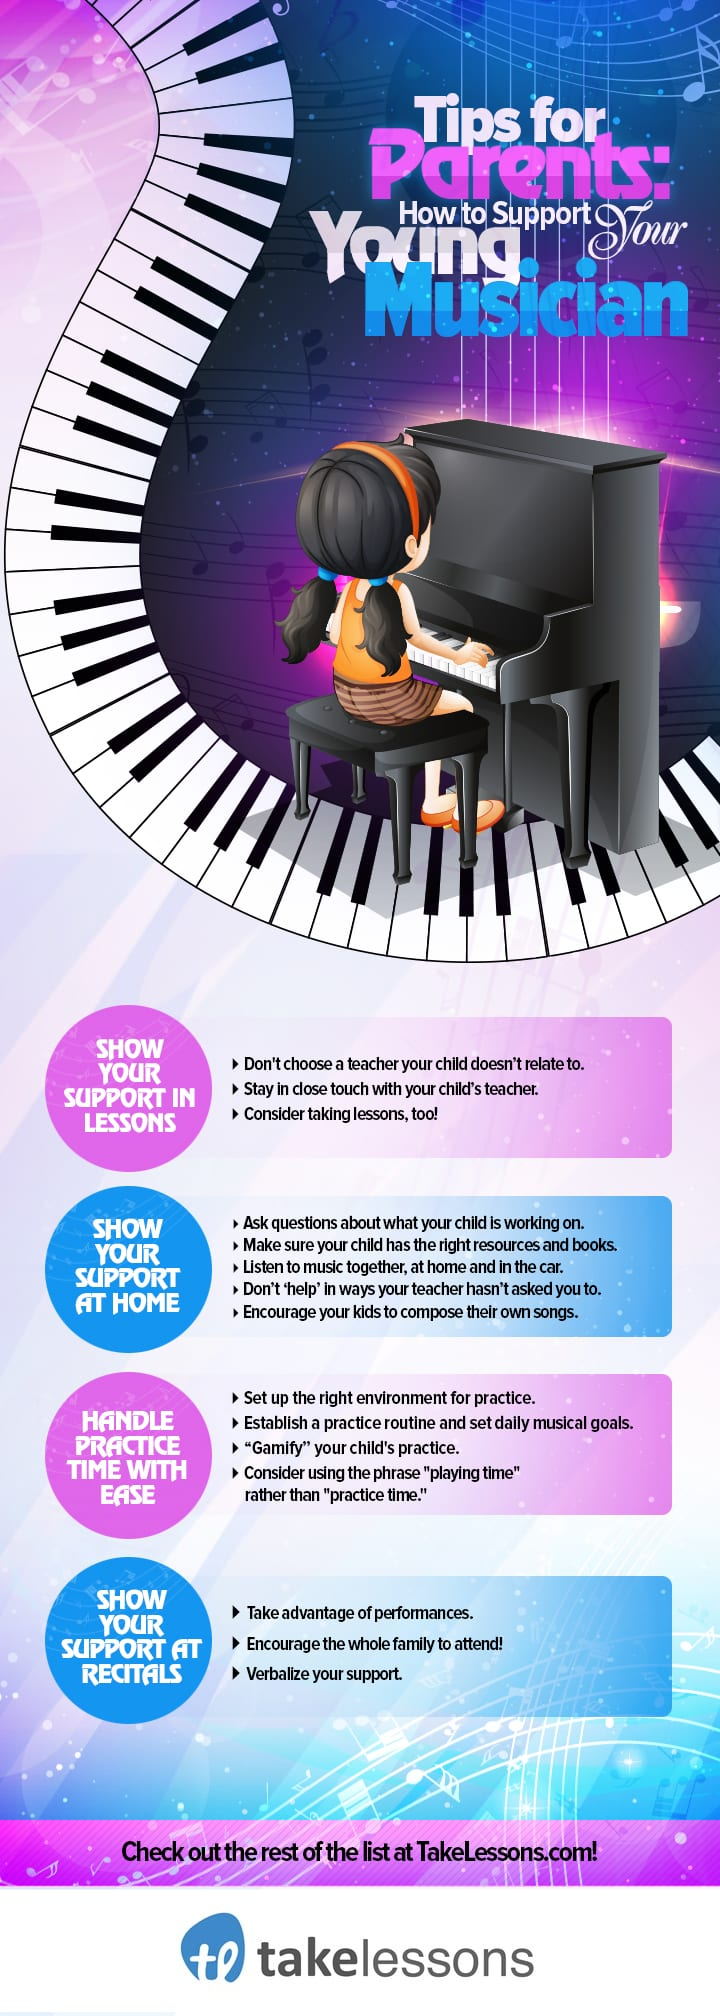 20+ Tips for Parents How to Support Your Young Musician